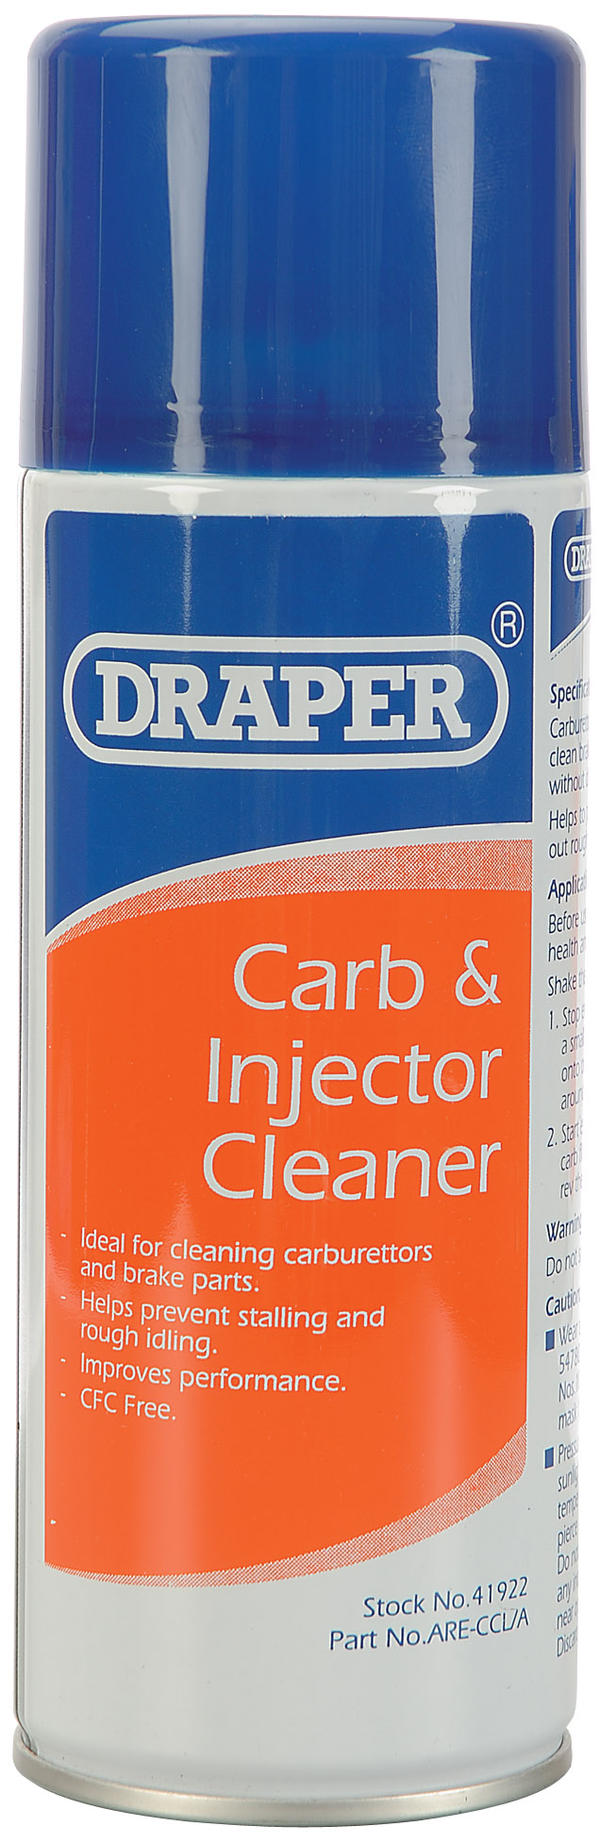 Draper 41922 ARE-CCL/A 400Ml Carburettor And Injector Cleaner Thumbnail 1